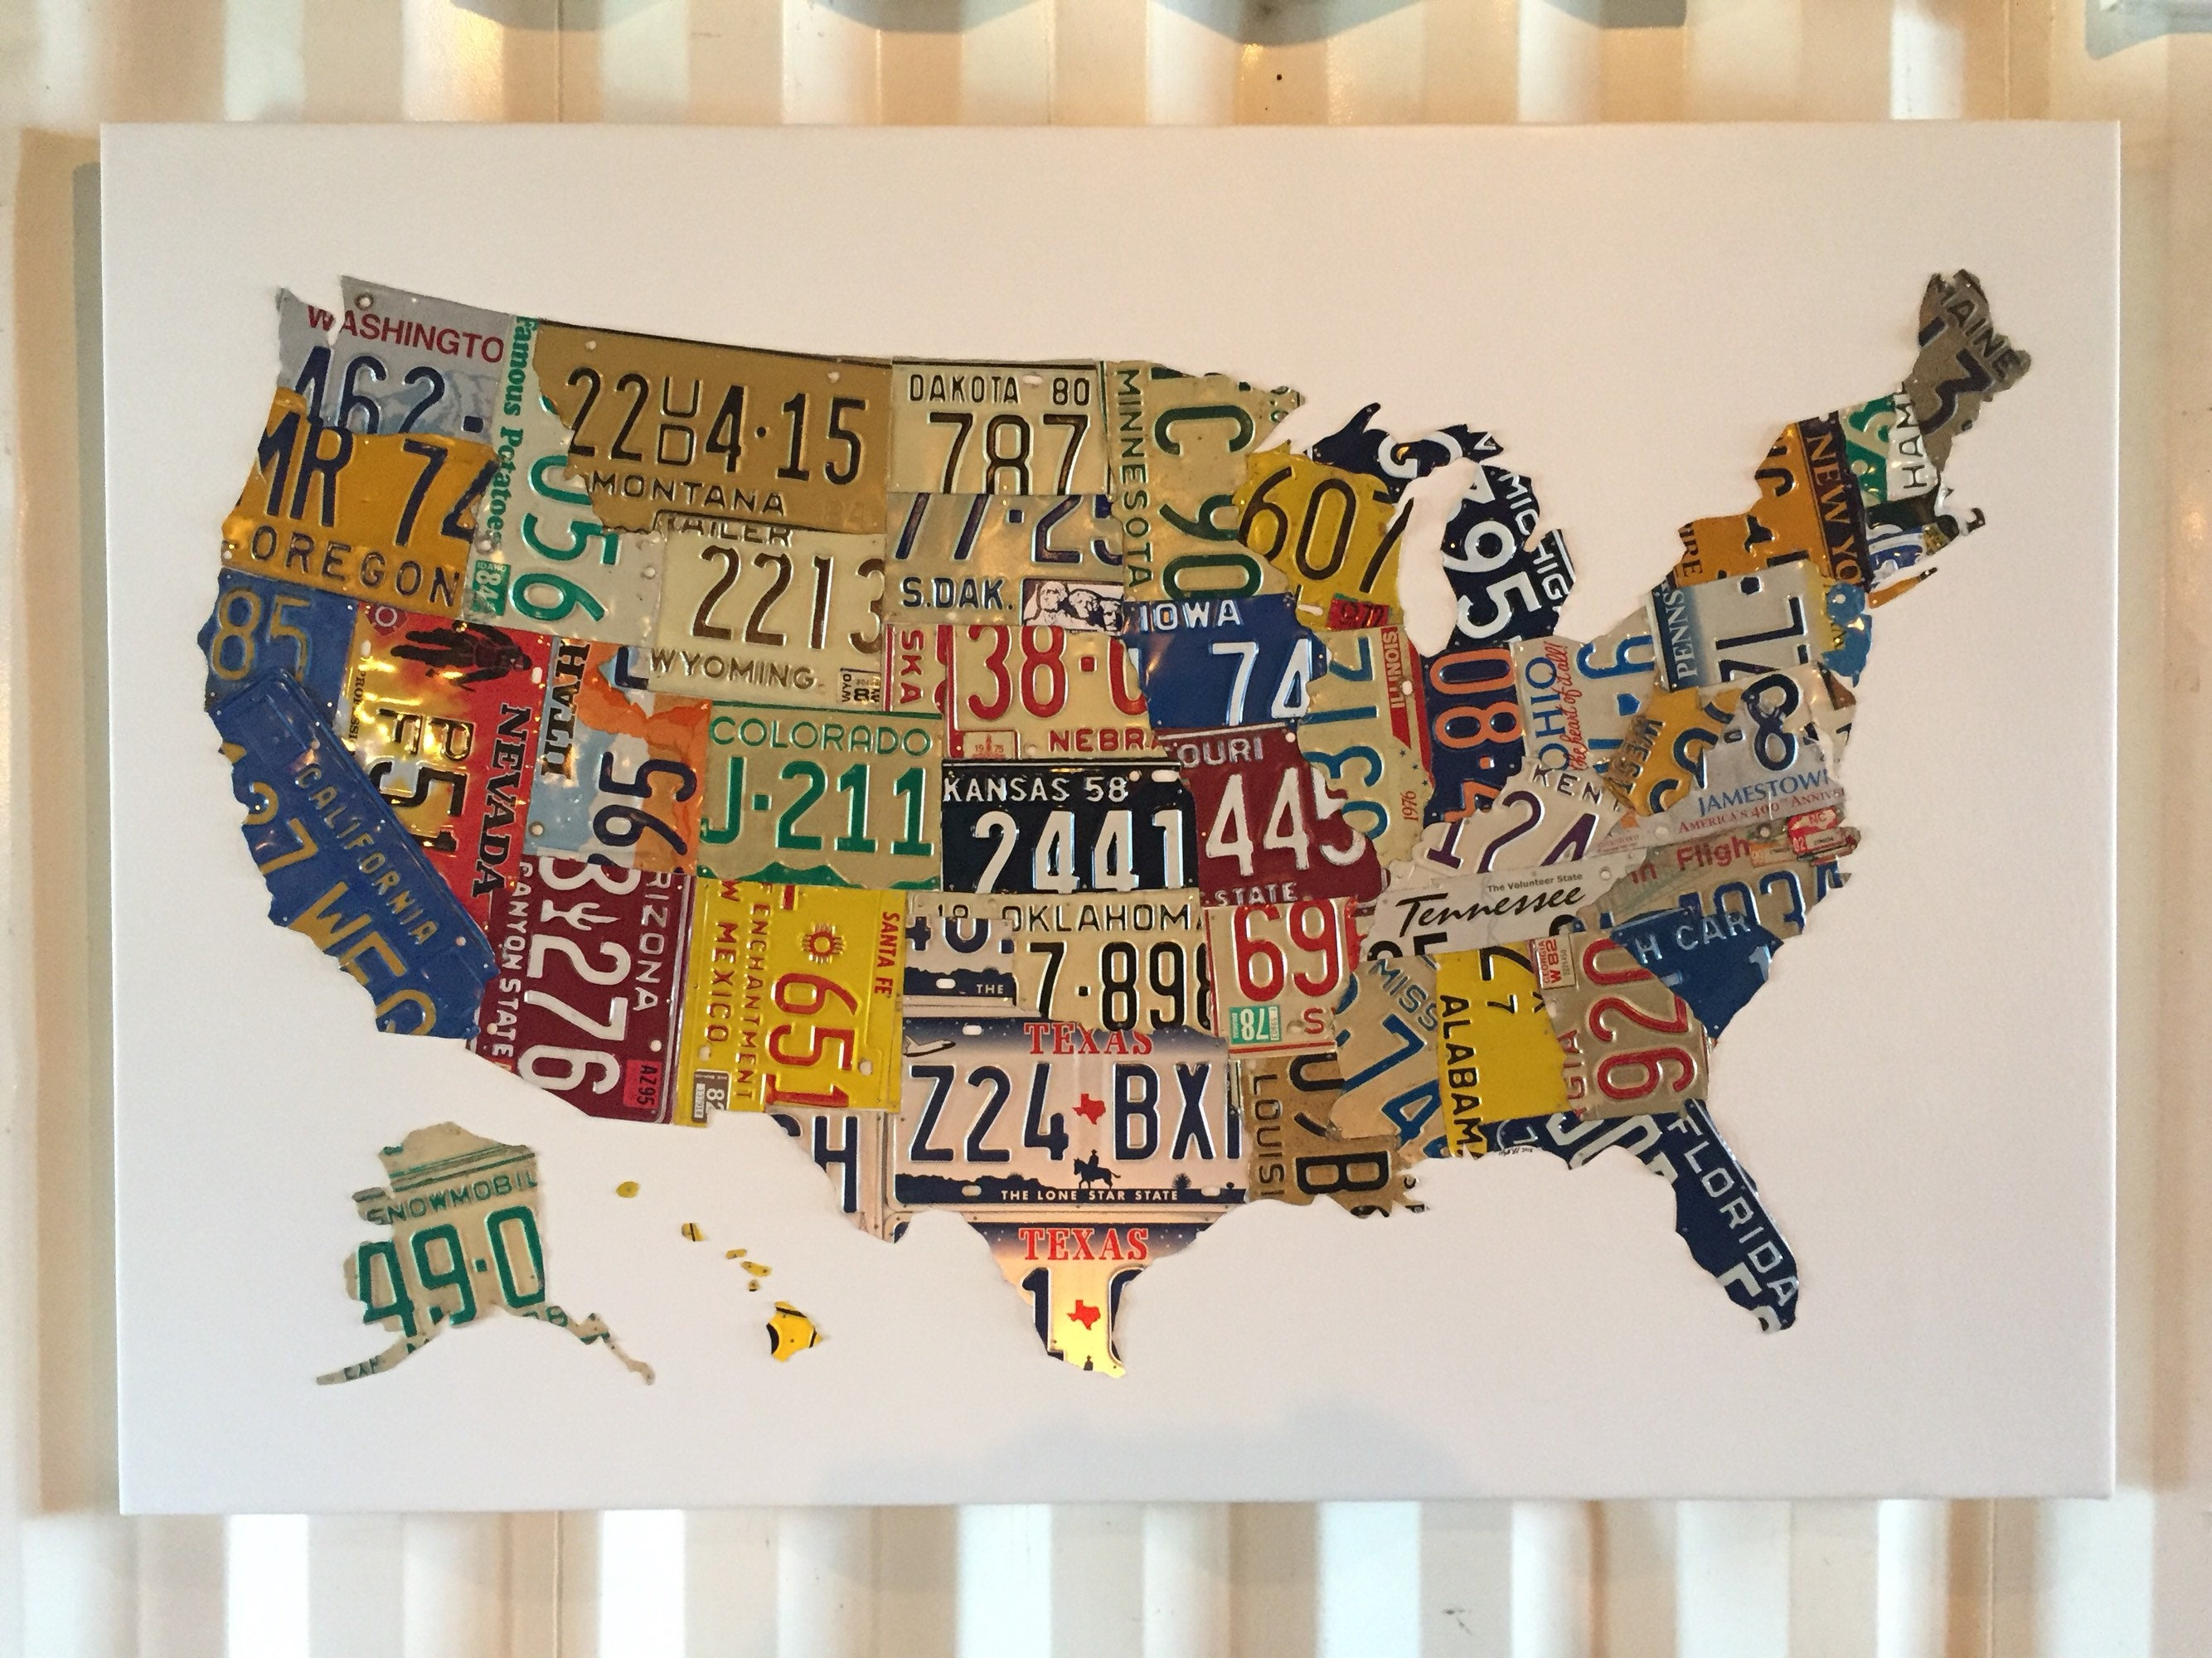 United States Map Made Out Of License Plates on using map of missouri license plates, united states map printable pdf, united states license plate game, 50 states license plates, united states map with scale, us map made of license plates, united states license plate designs, united states map art, united states licence plates, united states license plates 2014, united states map printout, furniture made from license plates,